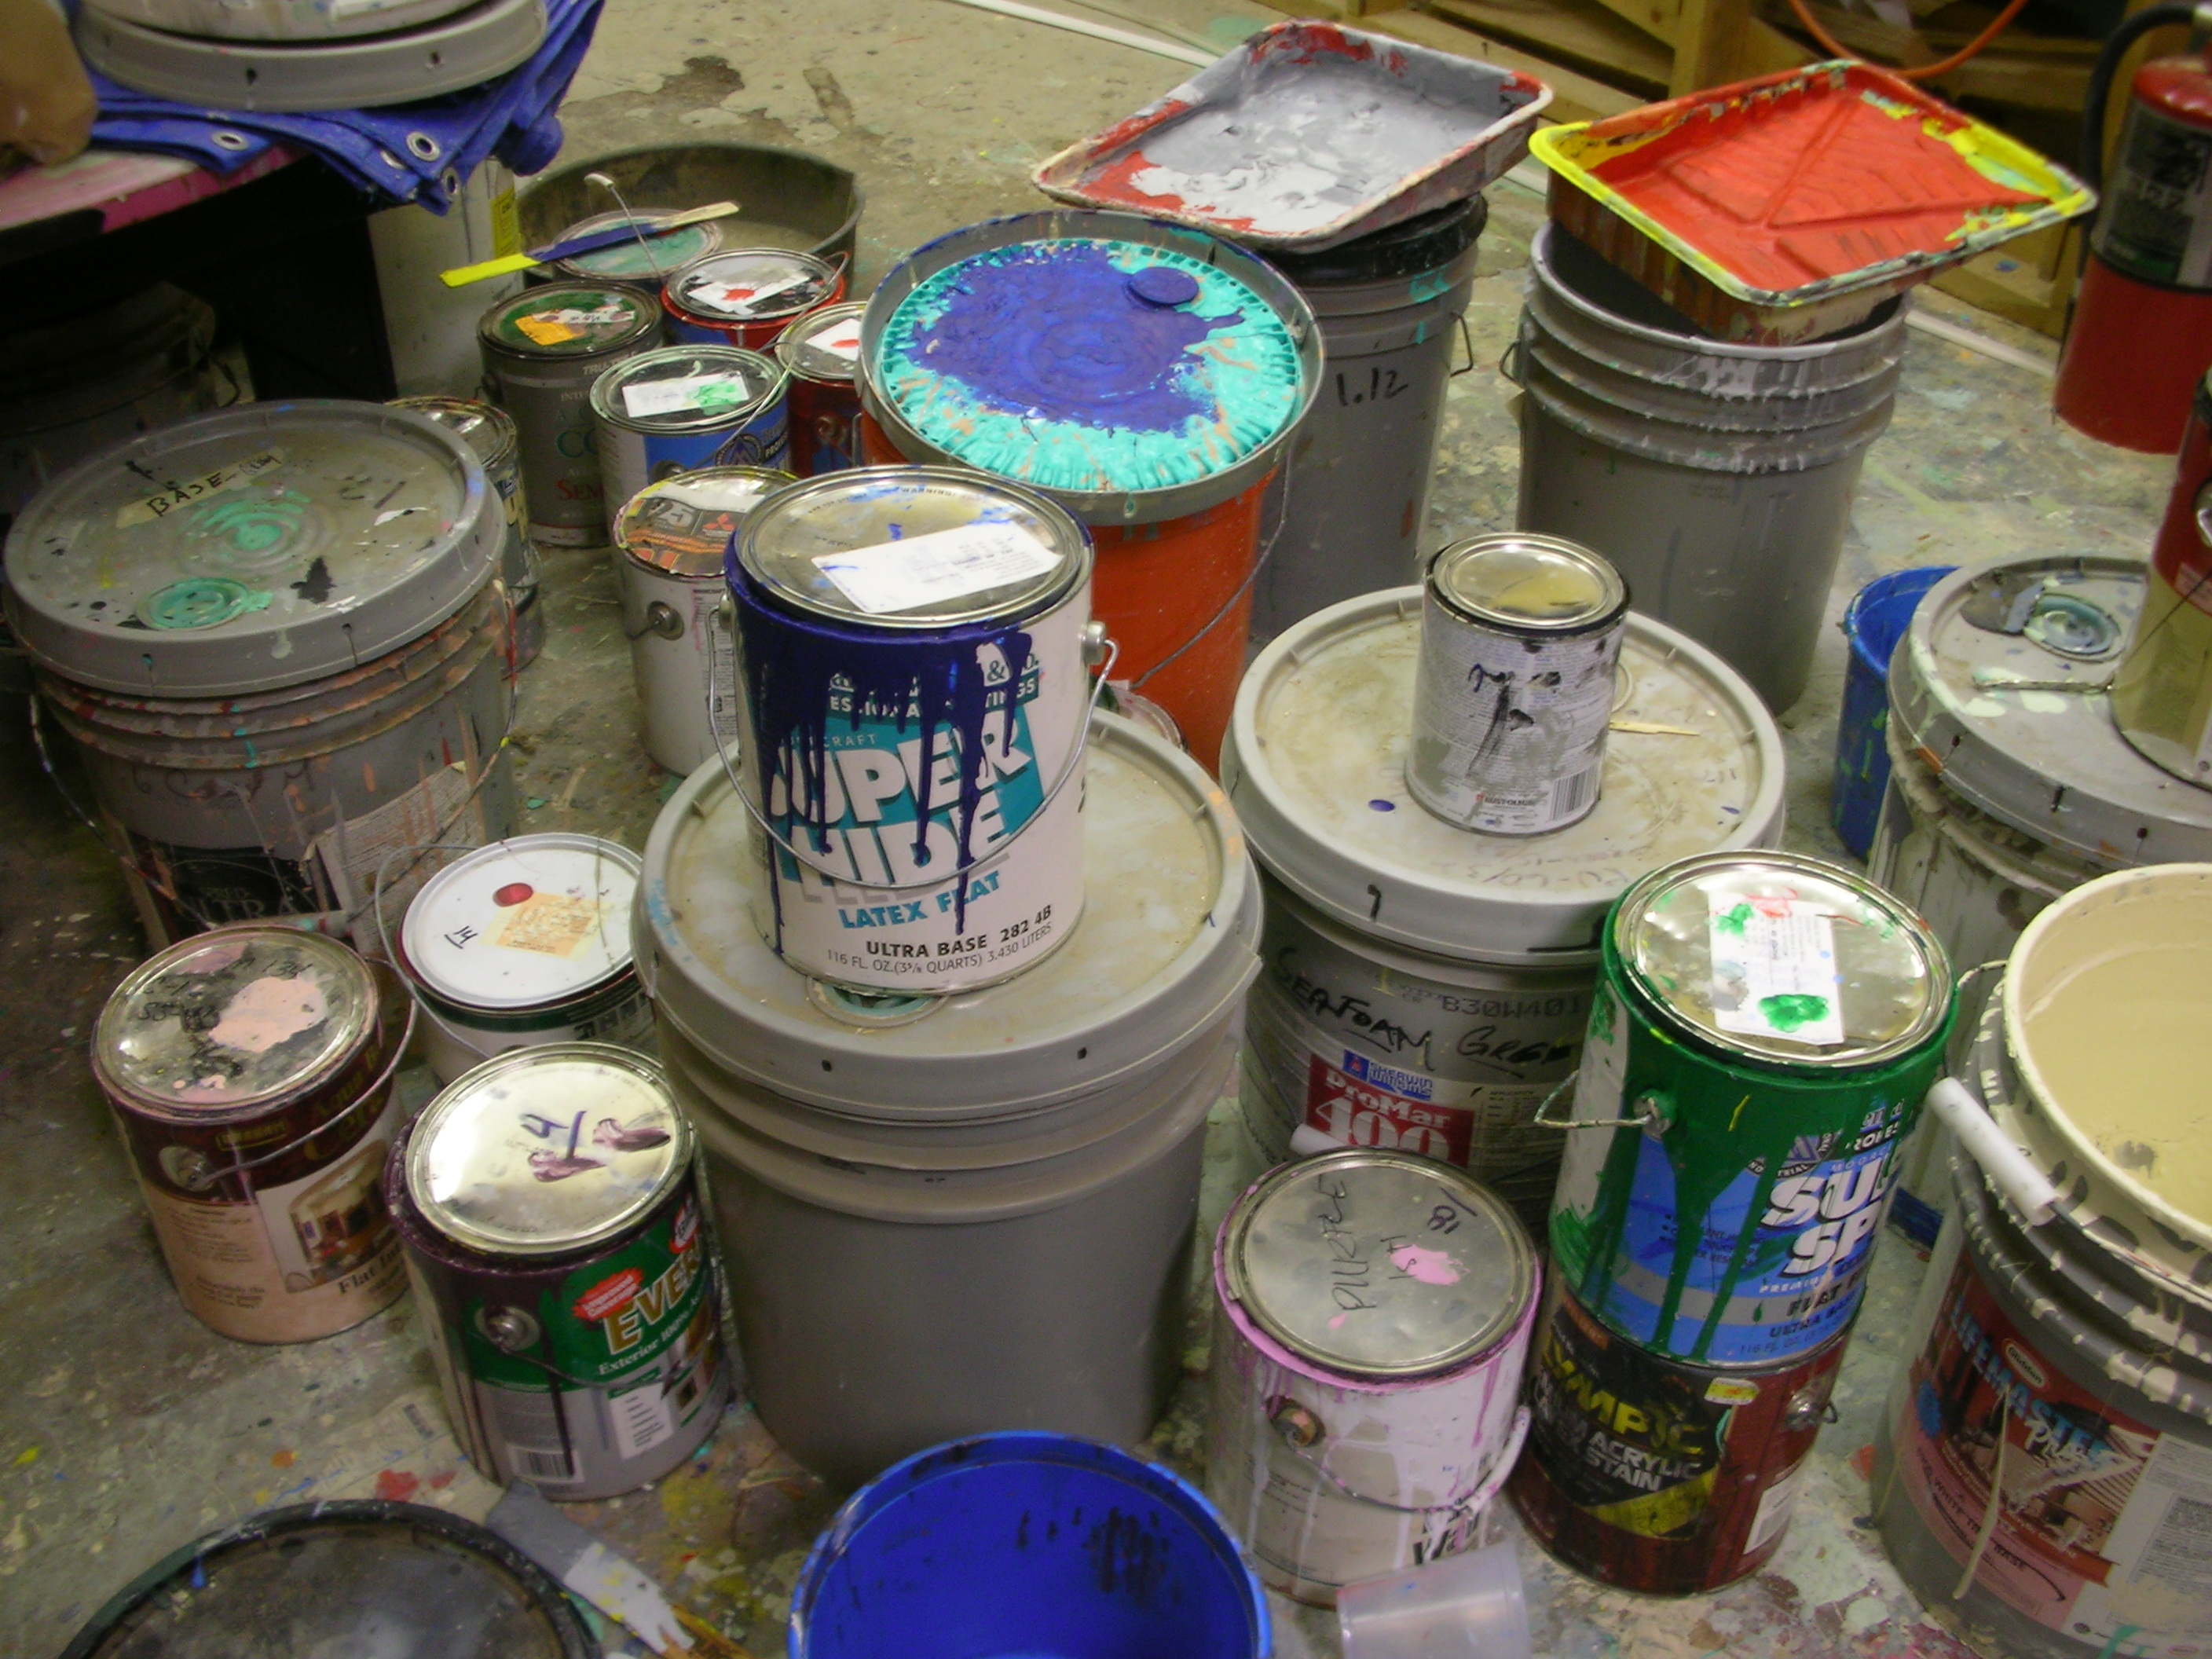 Paint cans, Cans, Colors, Cover, Dripping, HQ Photo